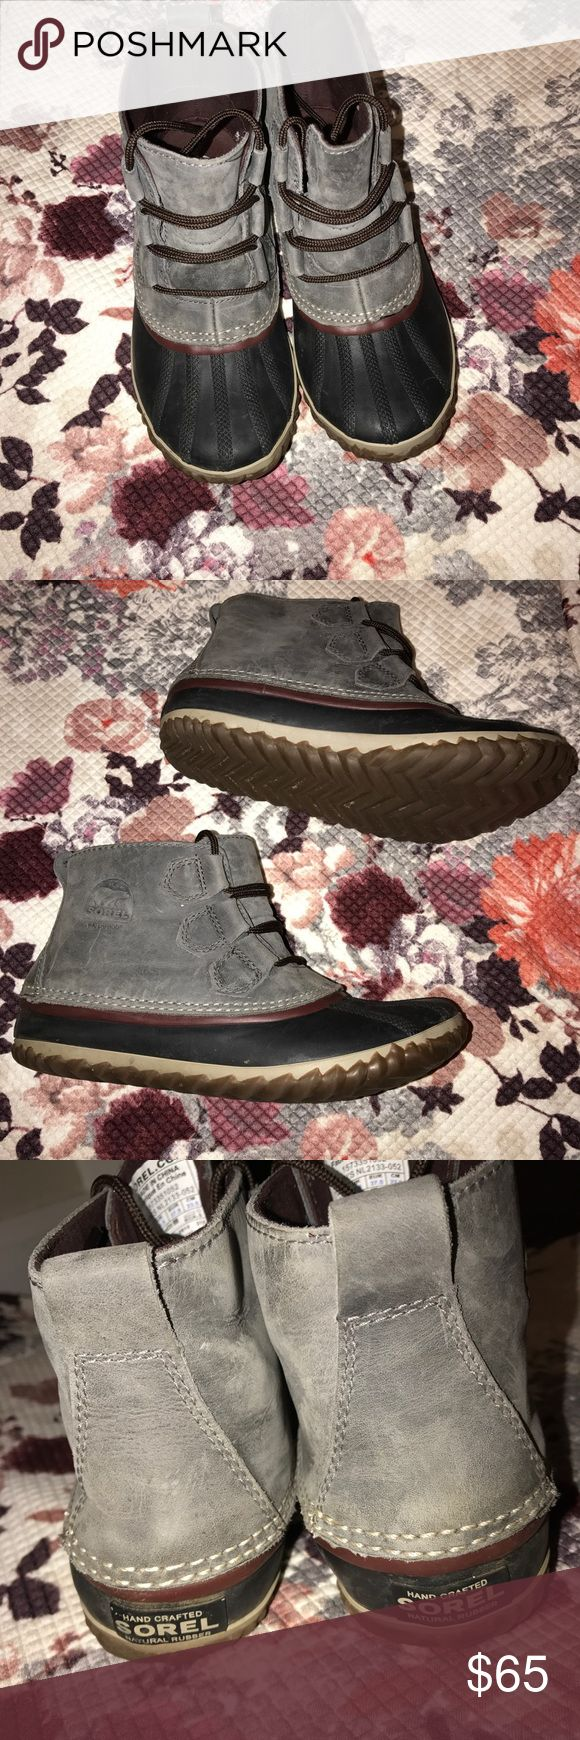 Sorel Out N About Boots Grey duck boots are water proof with a leather upper. Gently used and cared for. No scratches or scuffs. Sorel Shoes Winter & Rain Boots